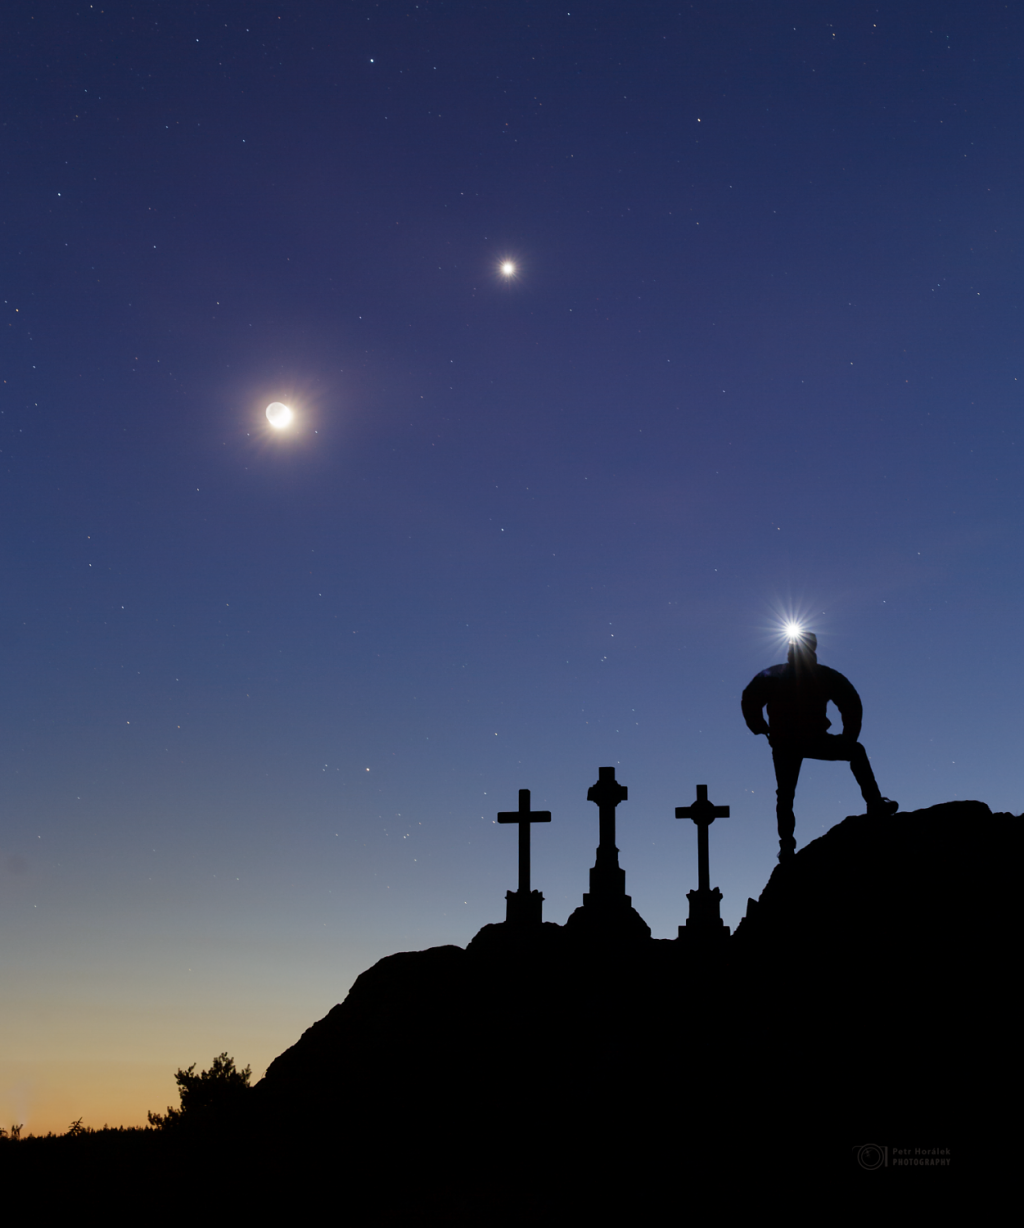 Moon, Venus, and Three crosses